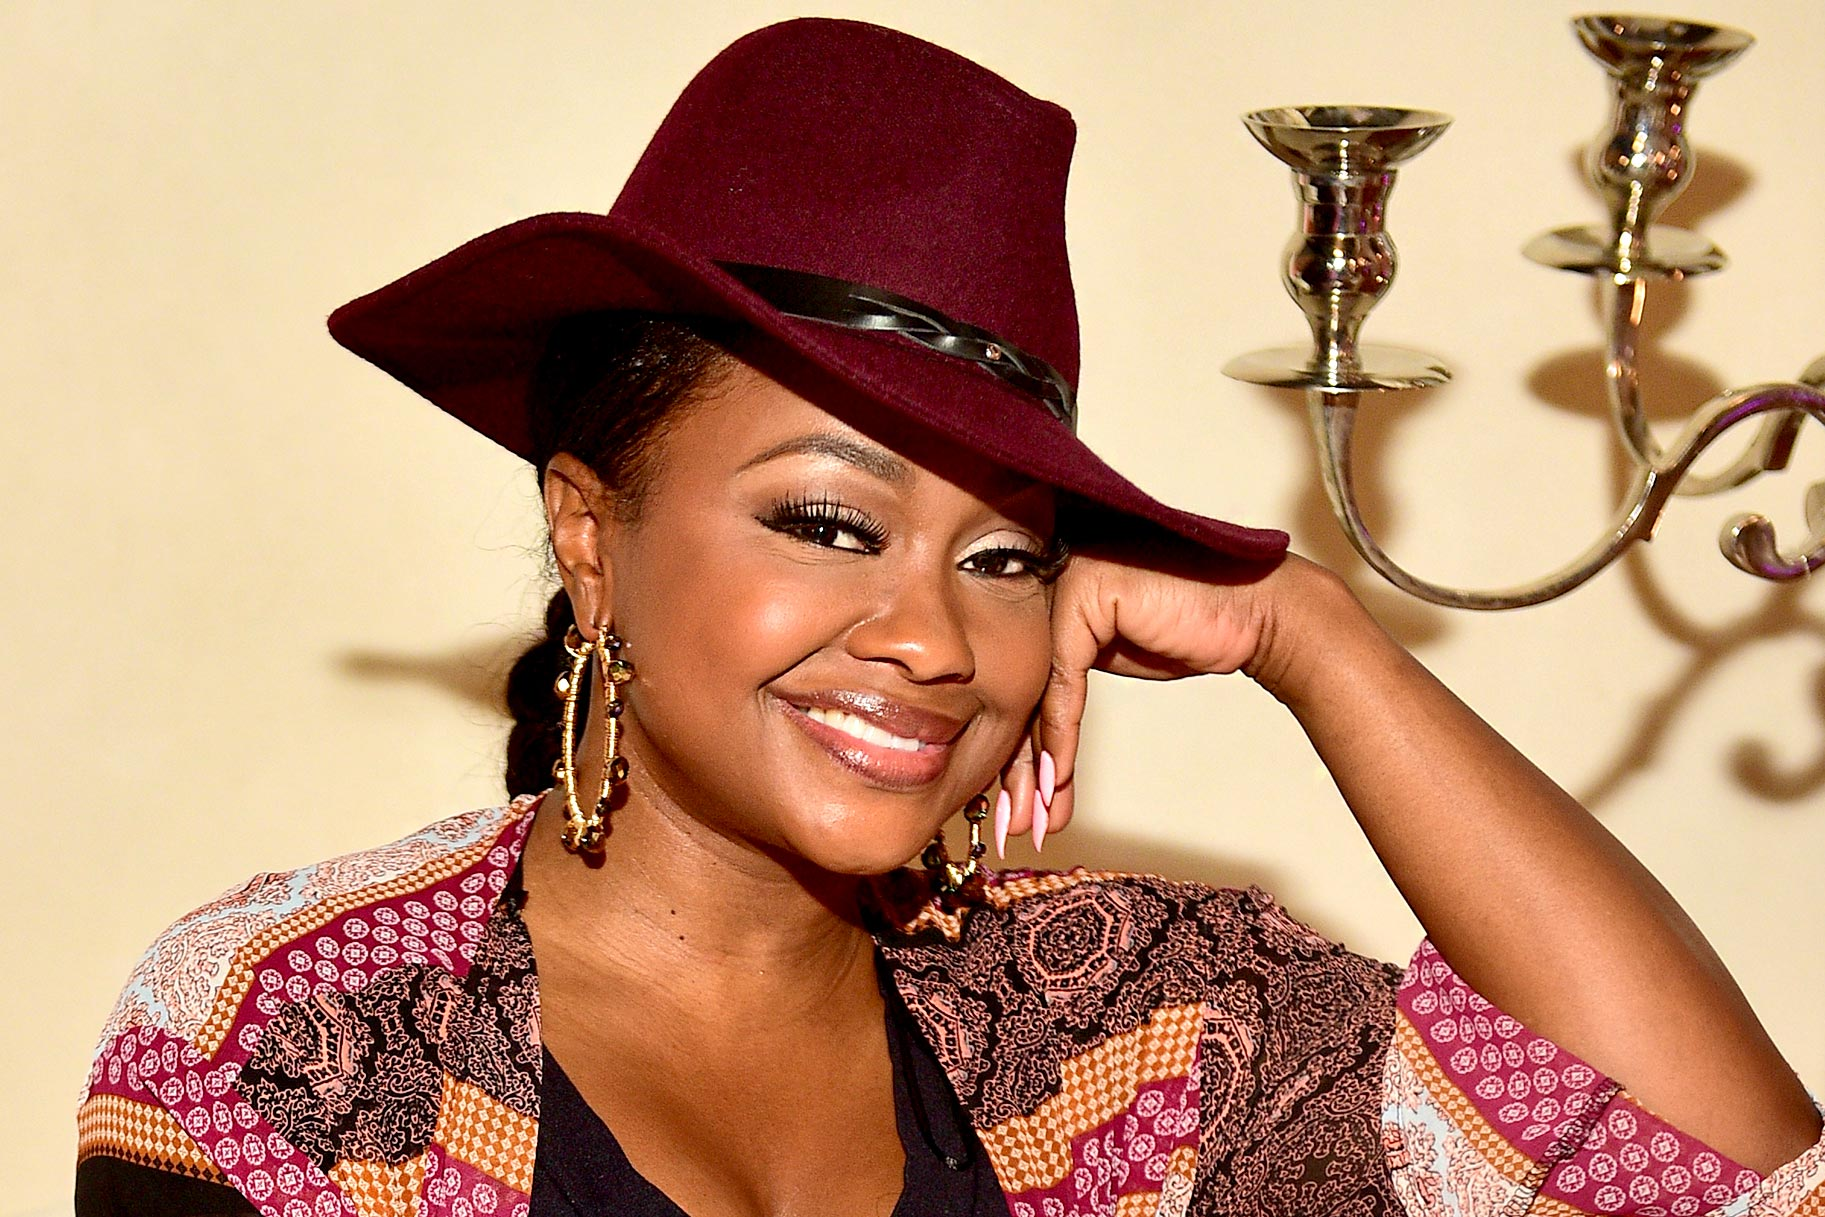 Phaedra Parks Talks About Day One Of Staying Home With The Kids